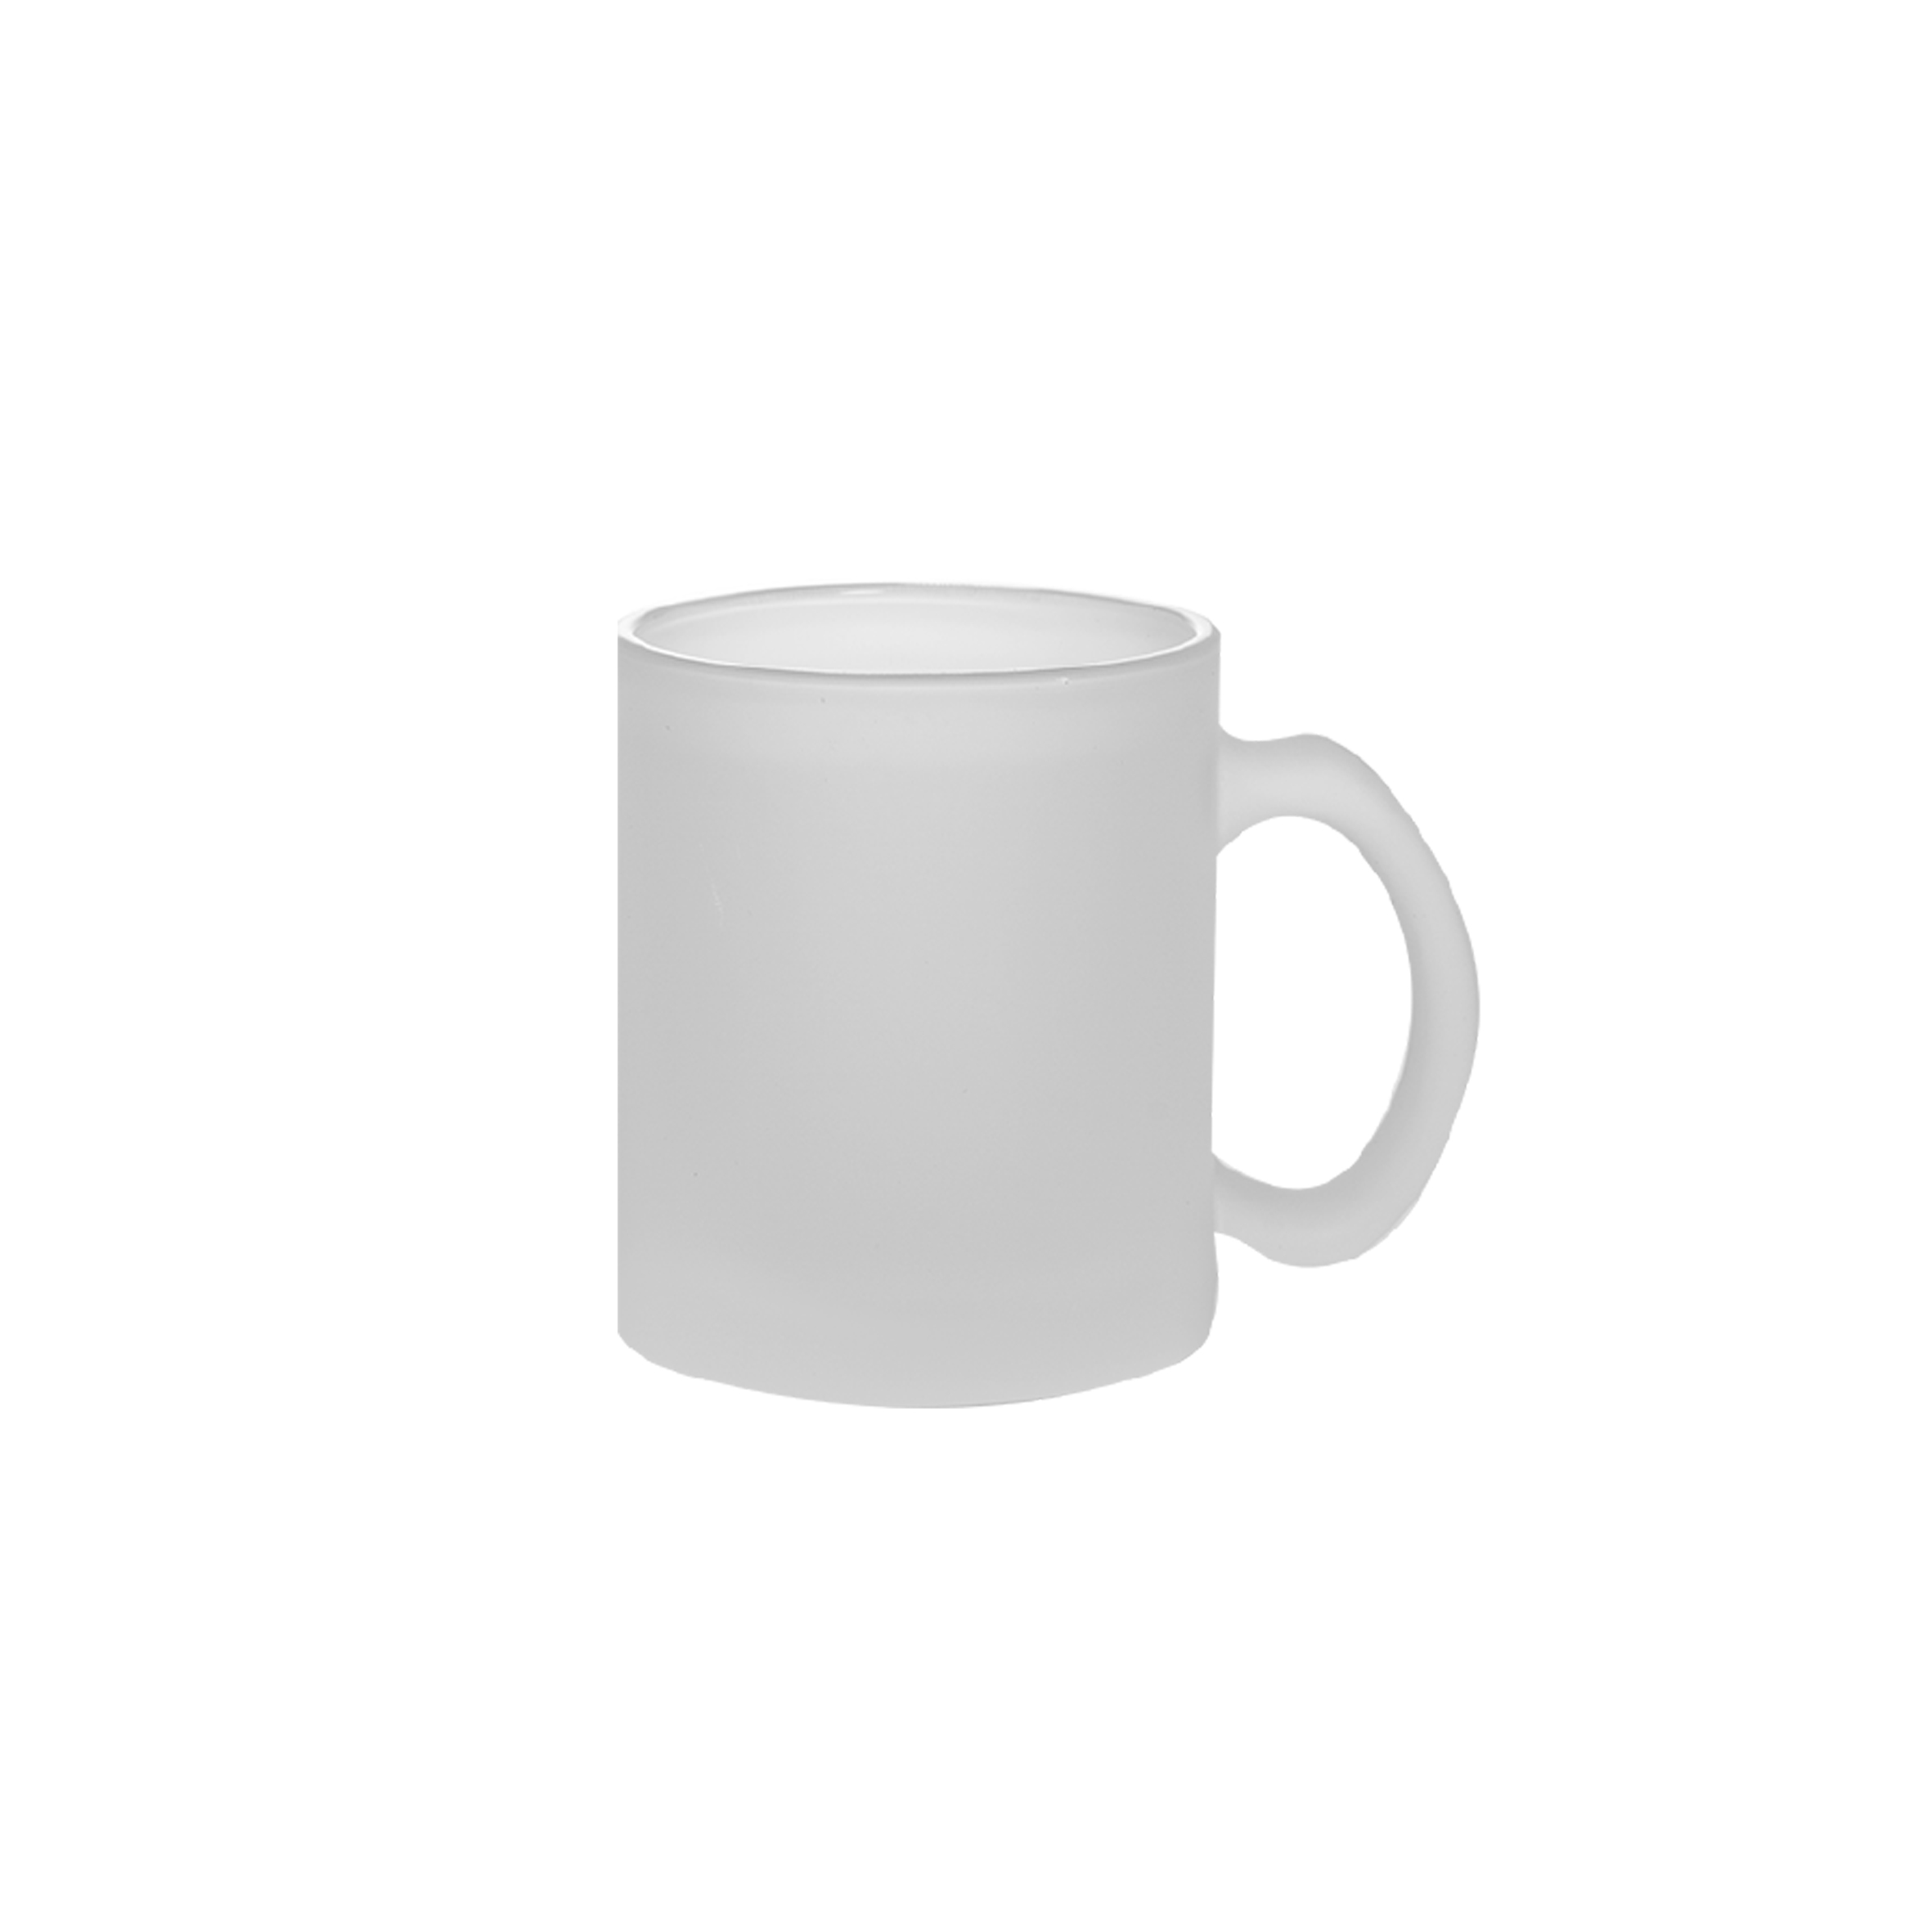 10 oz Frosted Glass Beer Cup